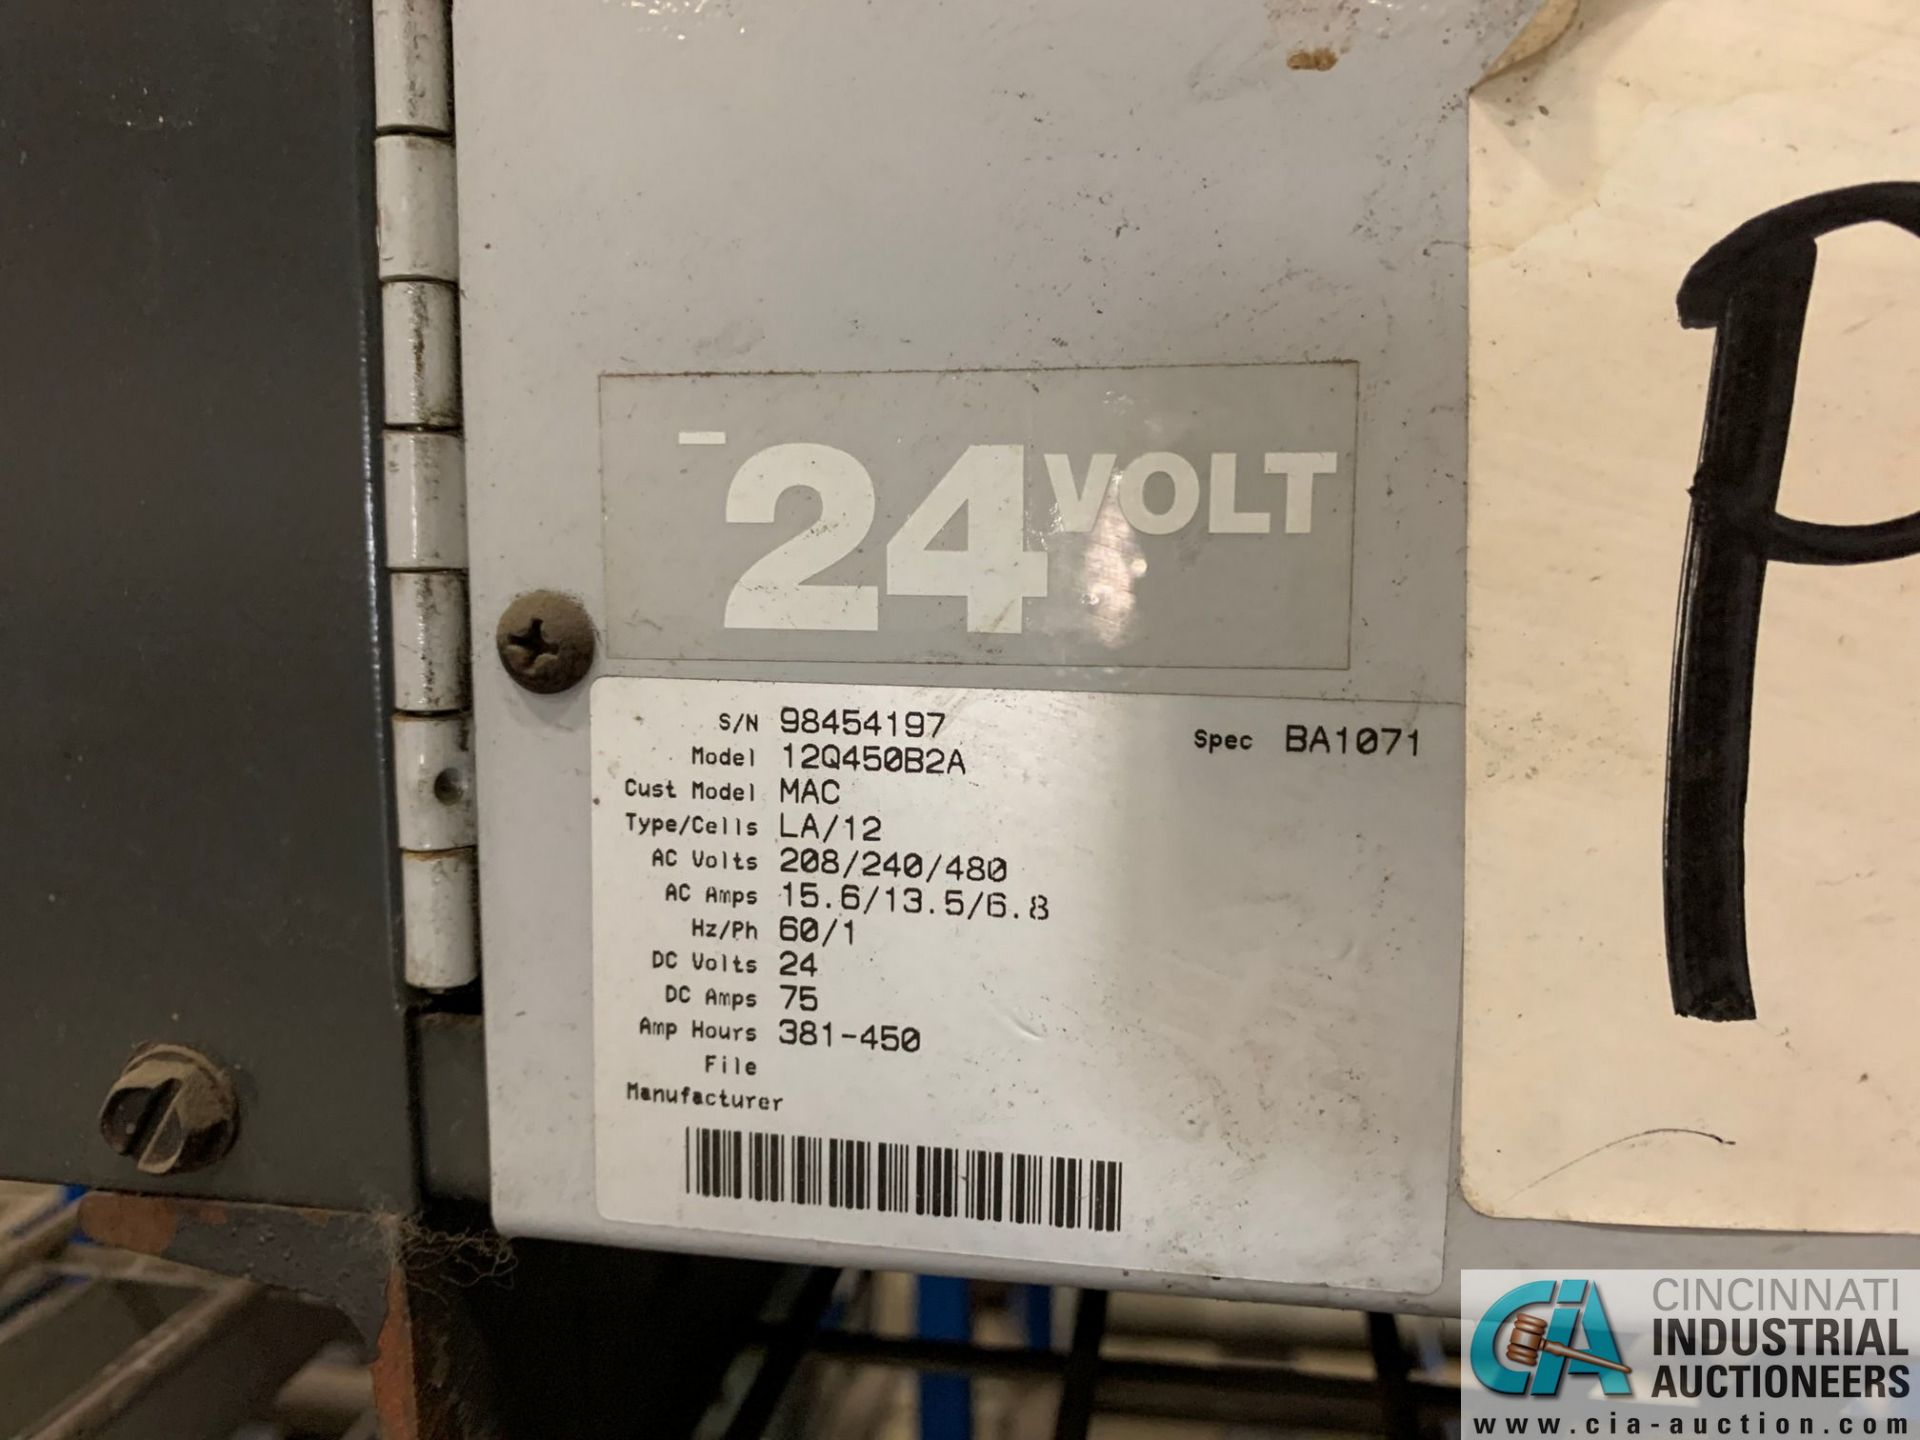 24-VOLT QUANTUM MODEL 12Q450B2A BATTERY CHARGER; S/N 98454197 (5400 OAKLEY INDUSTRIAL BLVD., - Image 2 of 3